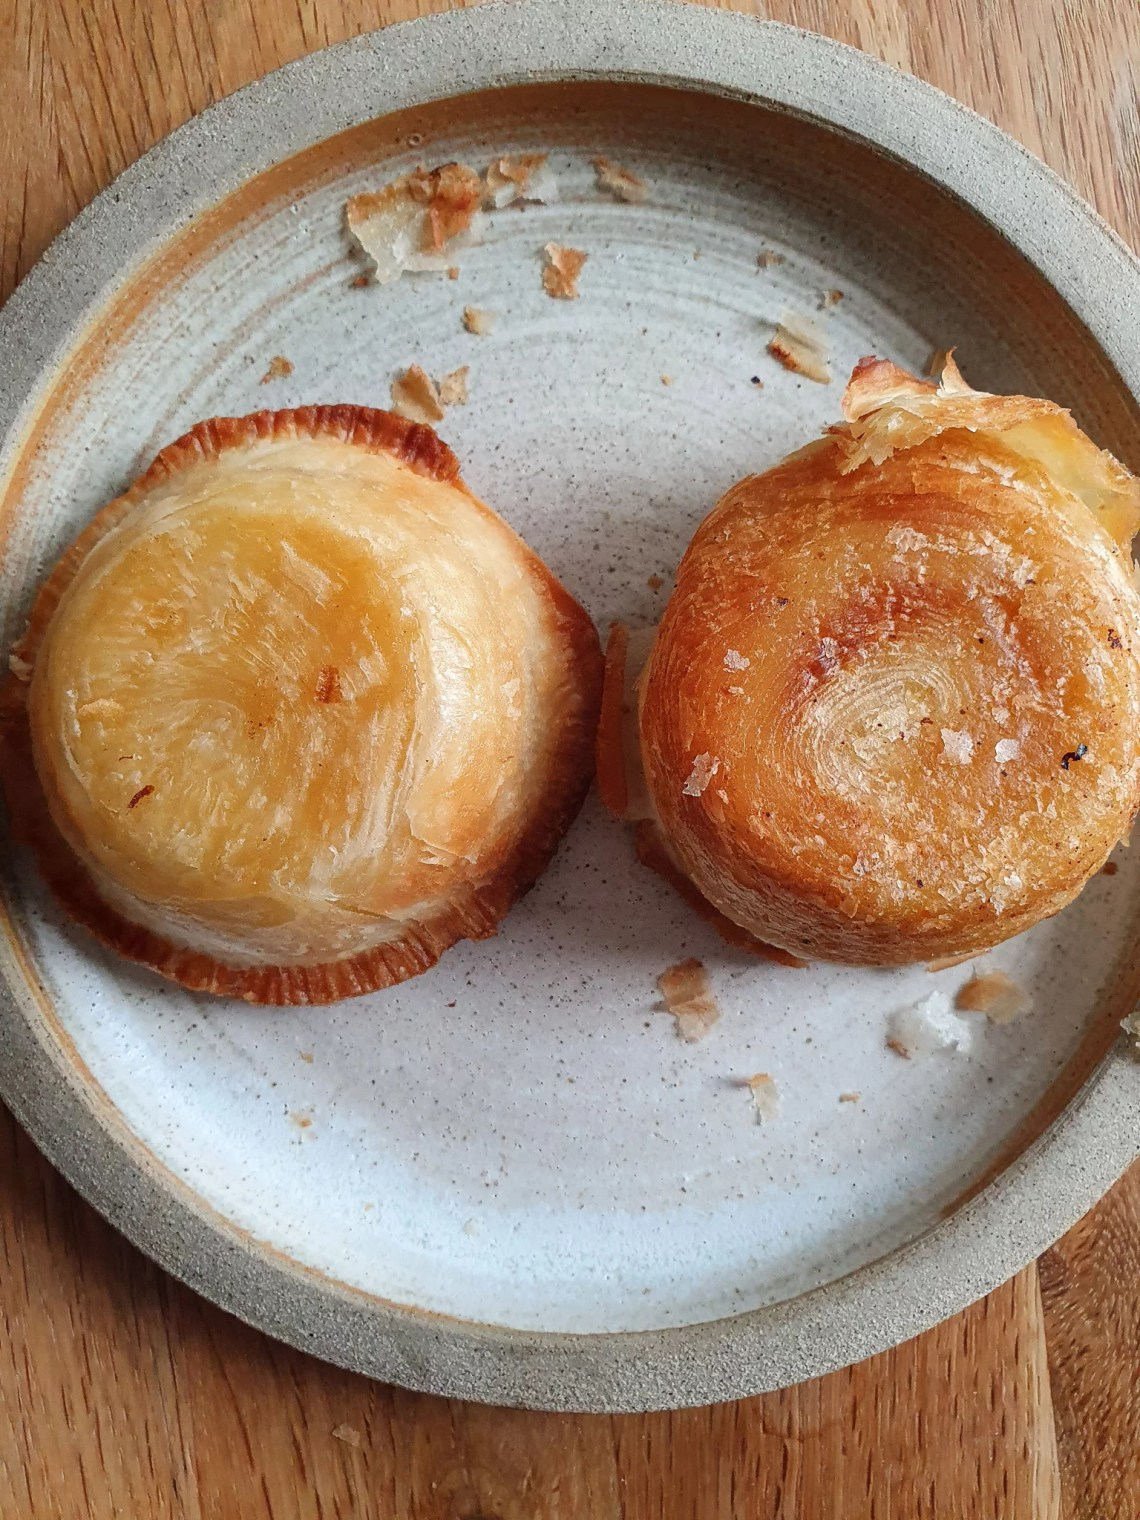 Portuguese tarts: Lidl on the left, Just Natas on the right. Bottom comparision